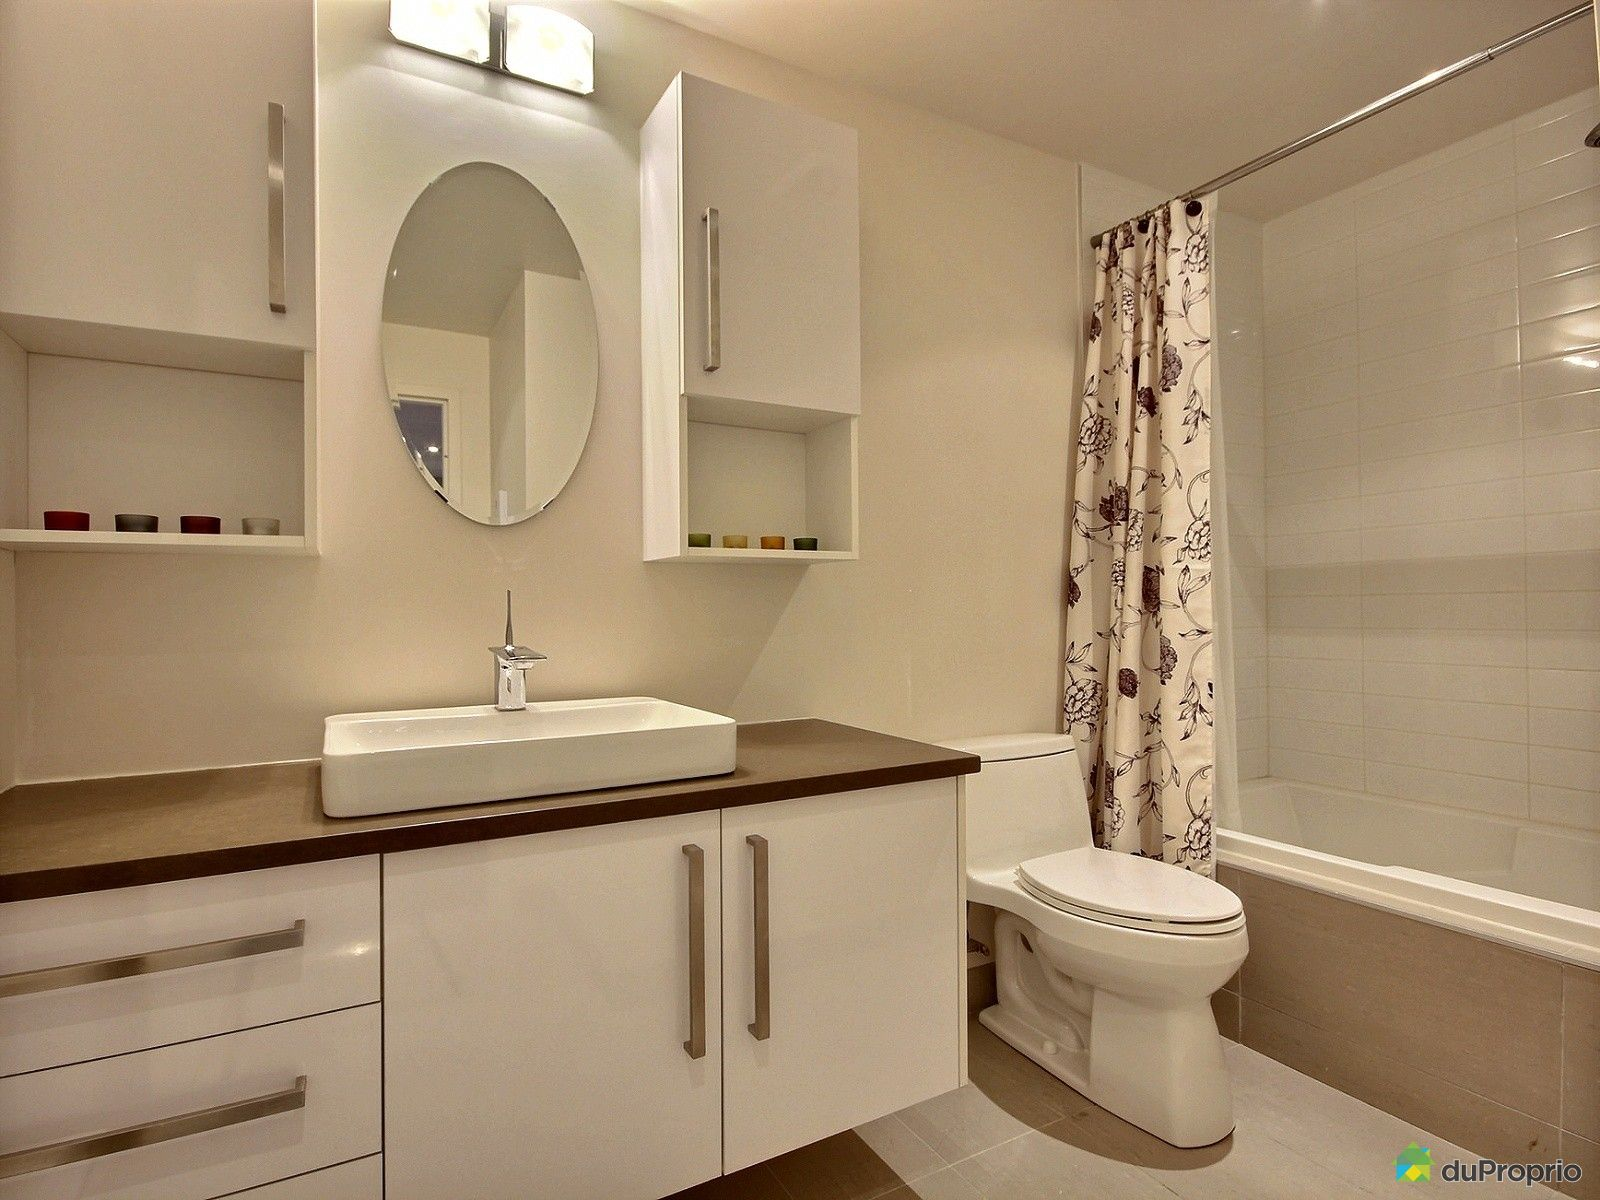 Condo for sale in montreal 502 8635 rue lajeunesse for Bathroom furniture quebec